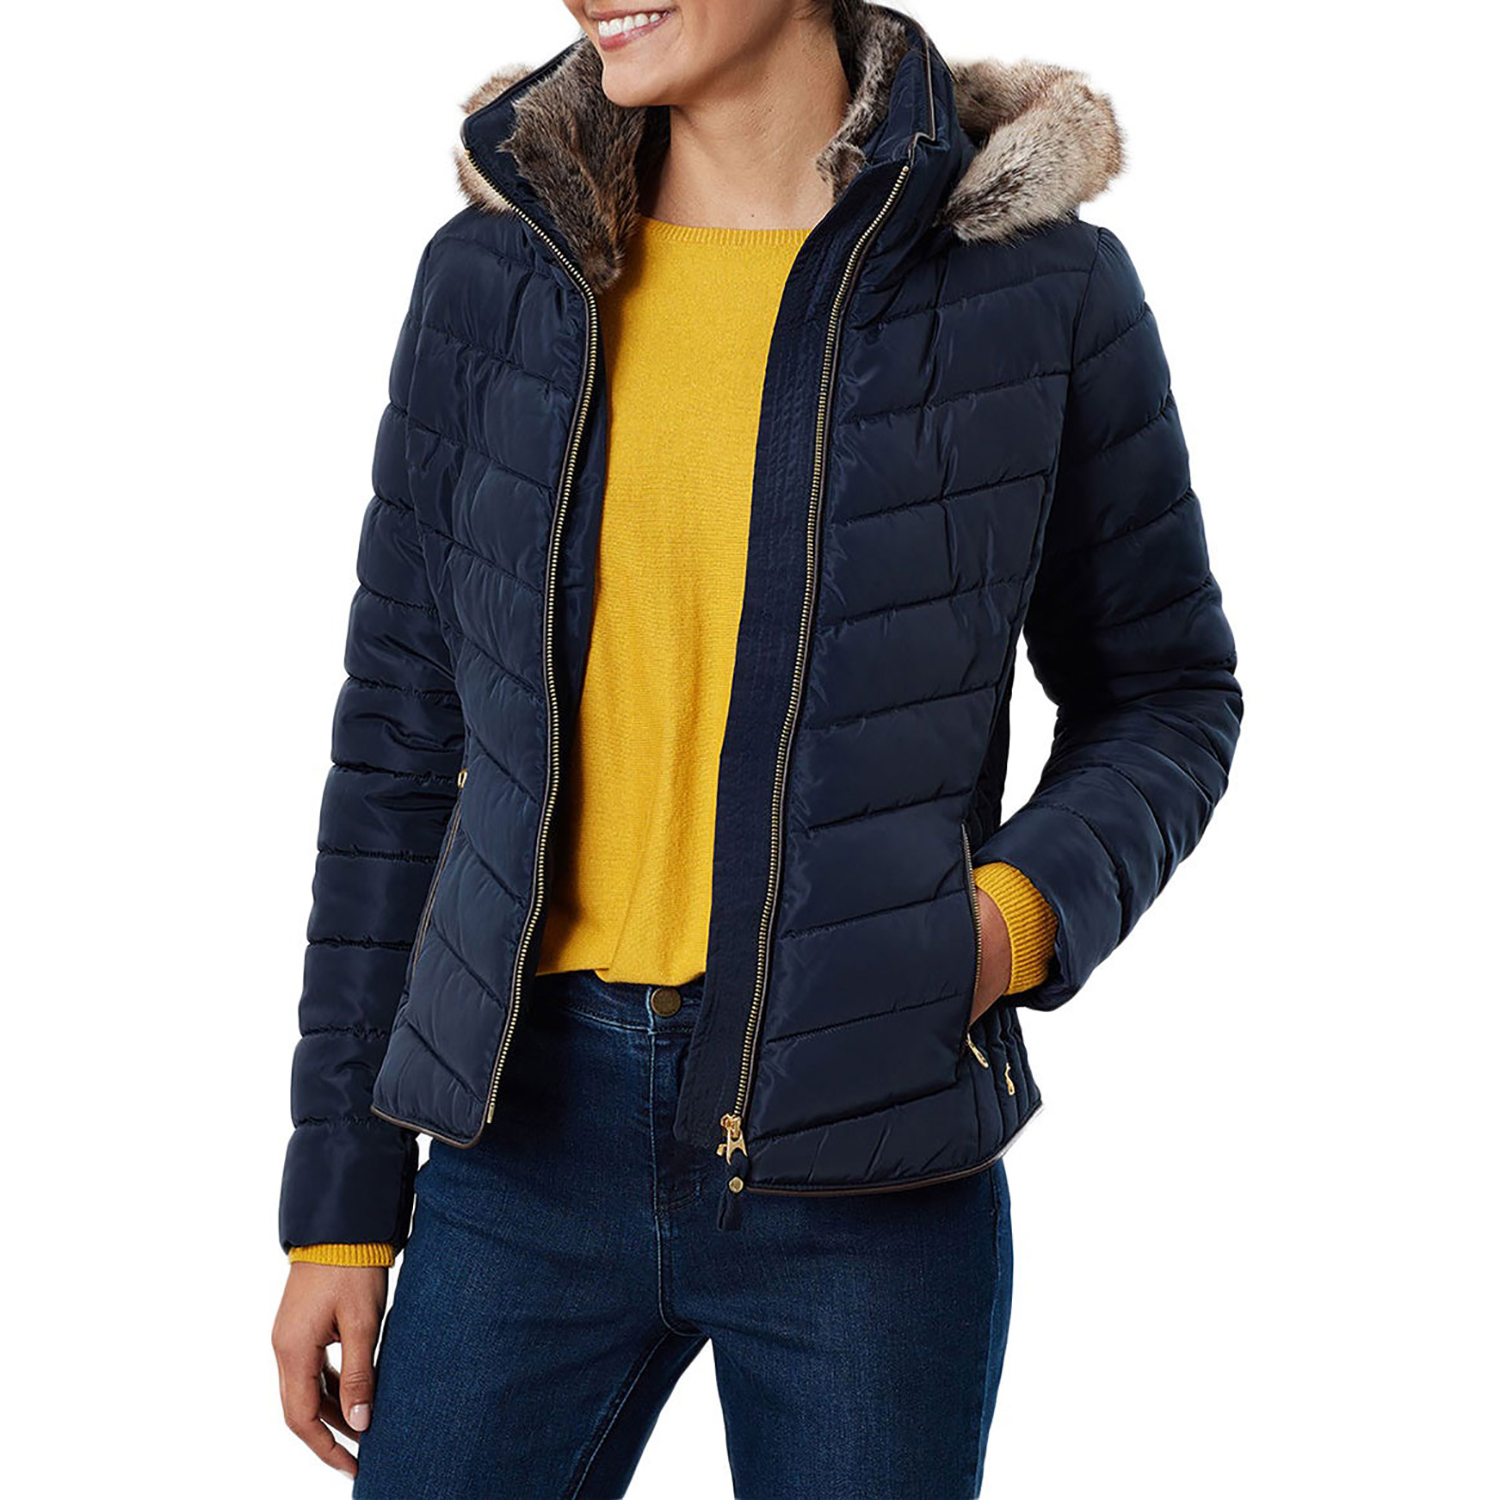 LACOSTE Women/'s Marine Blue Padded Jacket RRP £180 FR 40 size UK 12